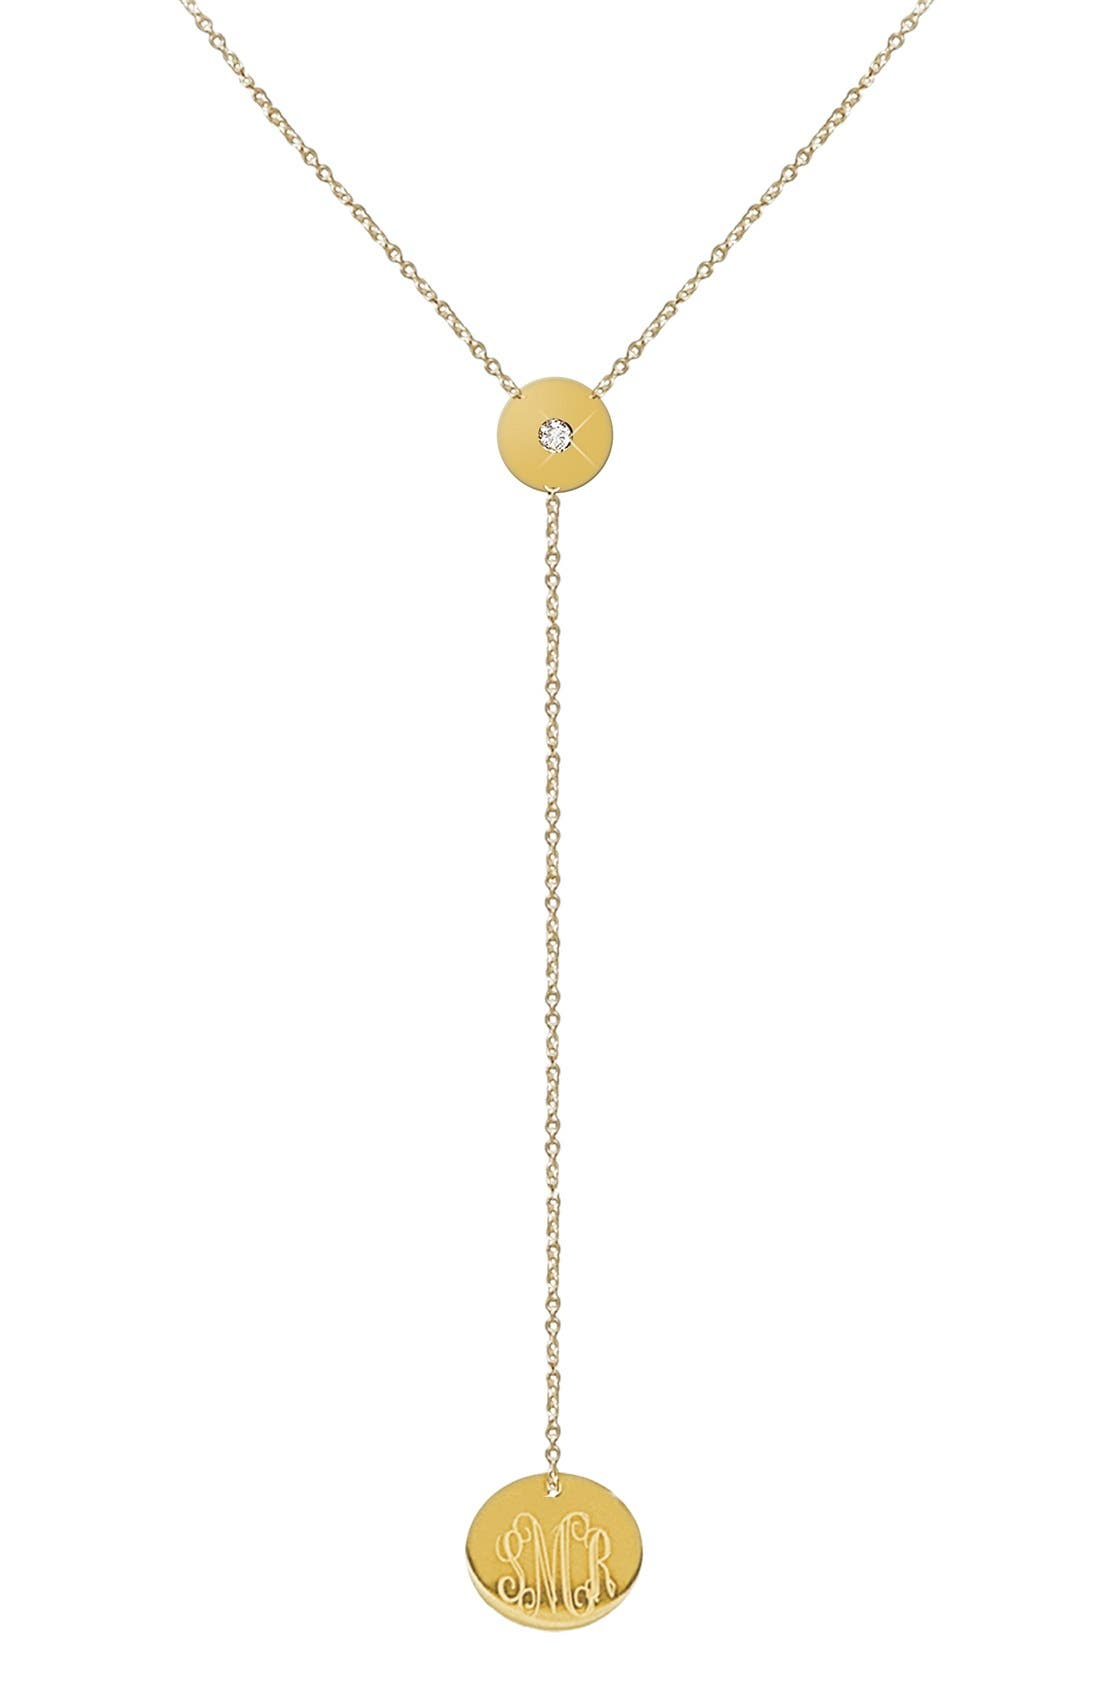 Diamond & Personalized Monogram Y-Necklace,                         Main,                         color, Gold